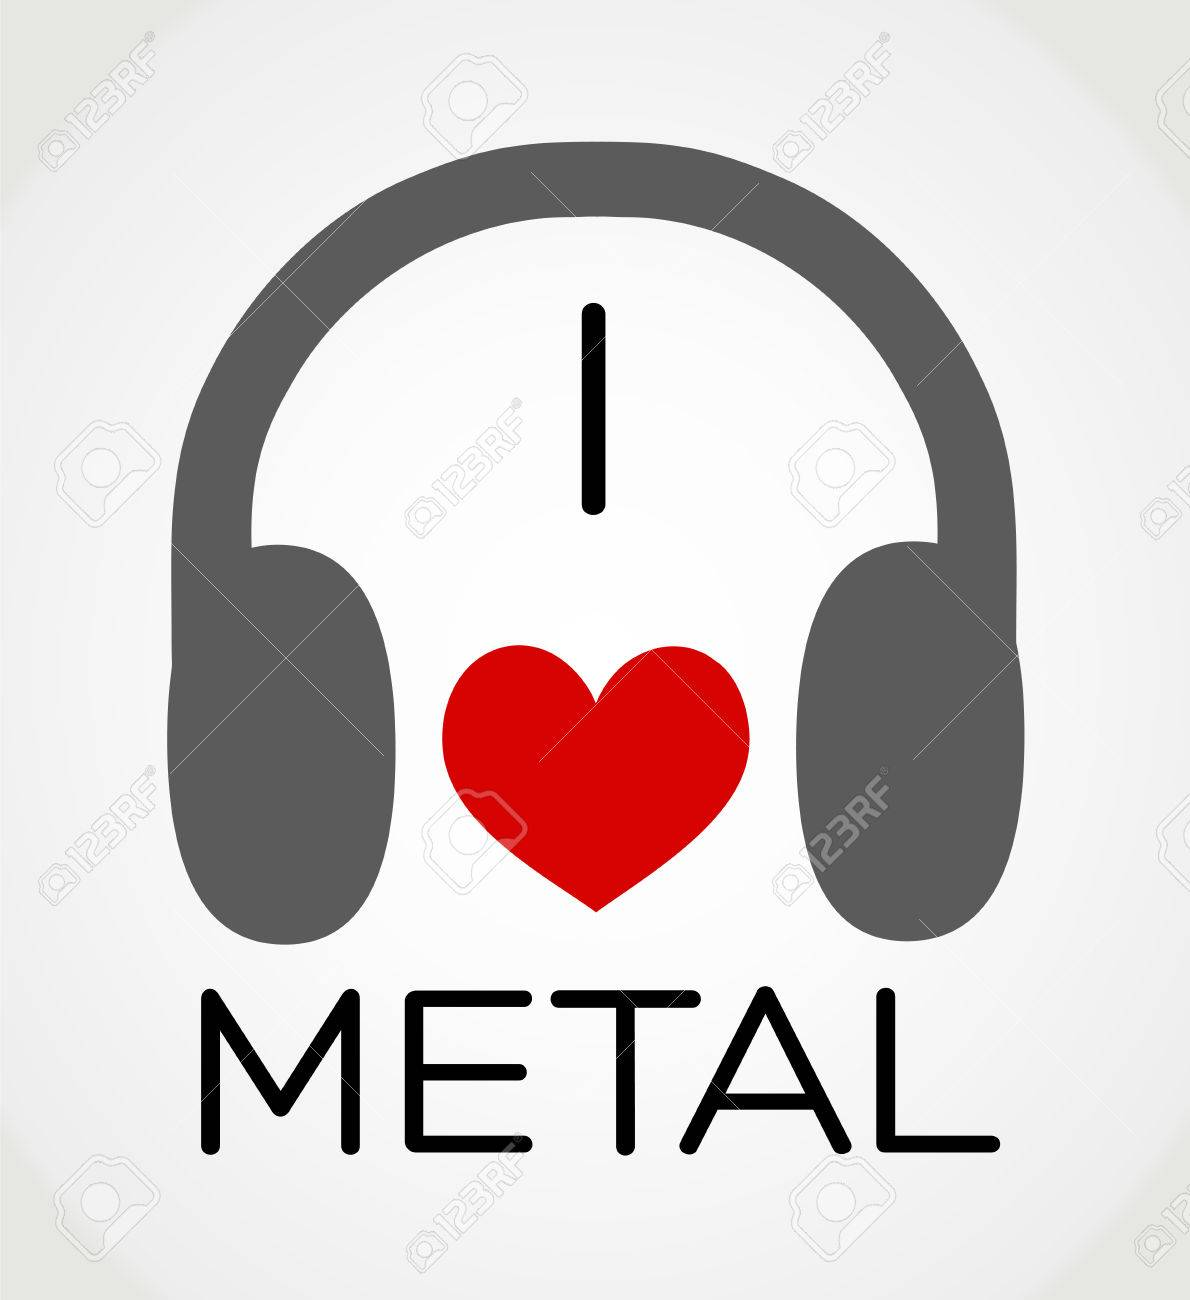 Metal music background - Vector Abstract Background I Love The Metal Music